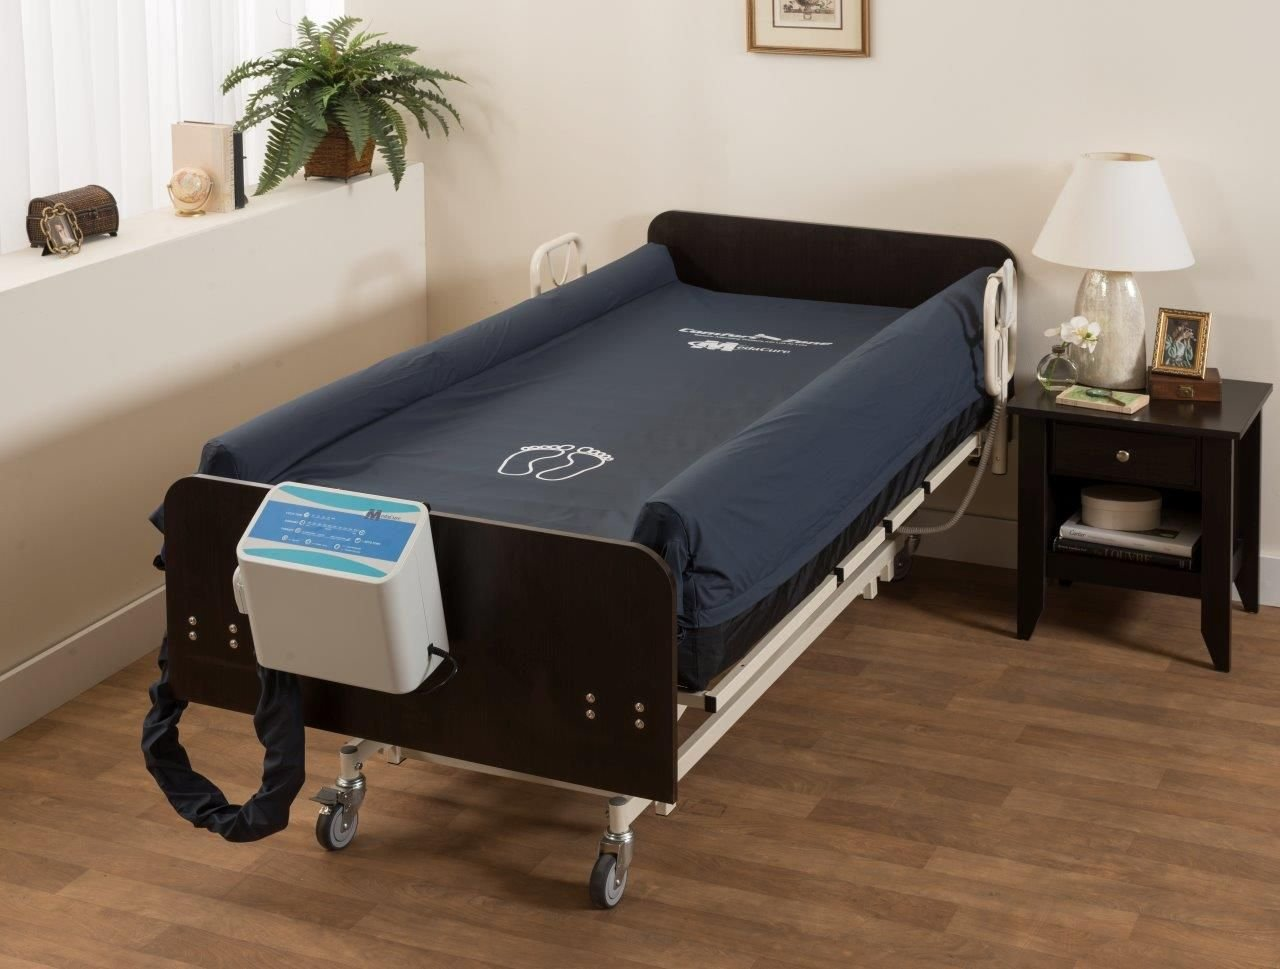 Bariatric Heavy Duty Alternating Pressure Low Air Loss Medical Mattress and Pump for Pressure Ulcer and Bed Sore Treatment w/BUILT-IN Fall Prevention AIR PERIMITER BOLSTER - 42'' Extra Wide